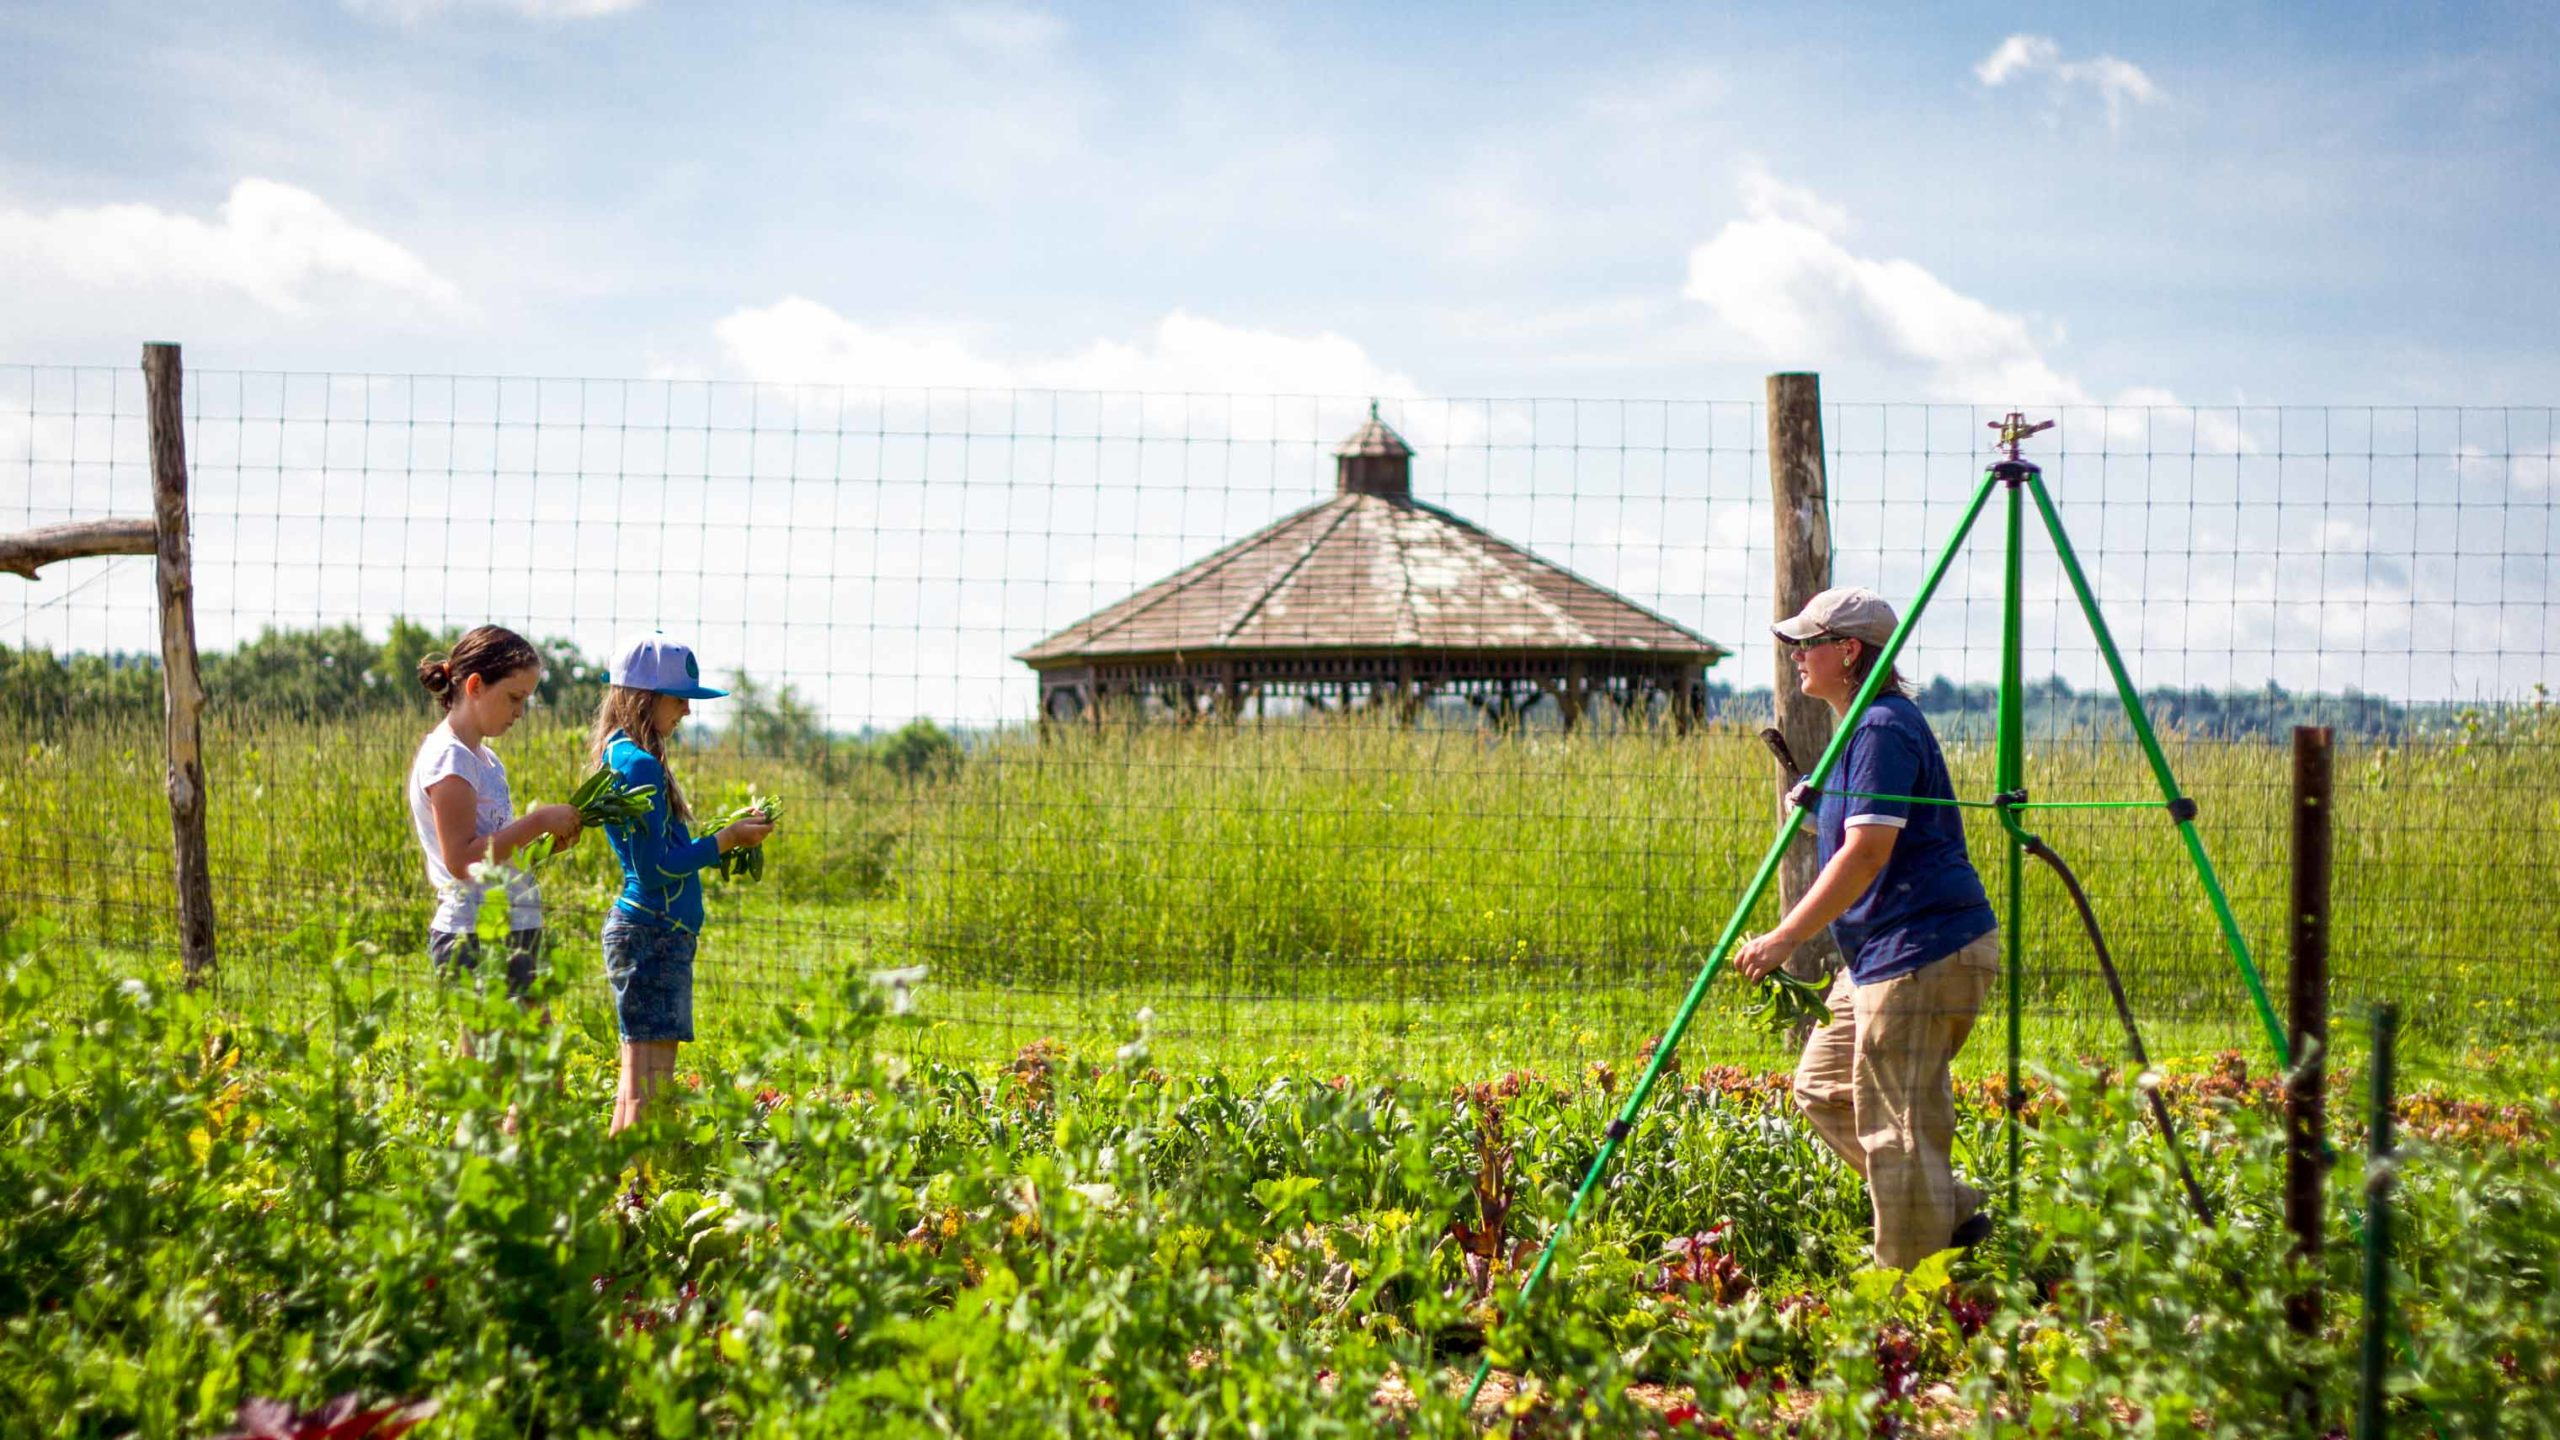 Campers working on farming in the garden